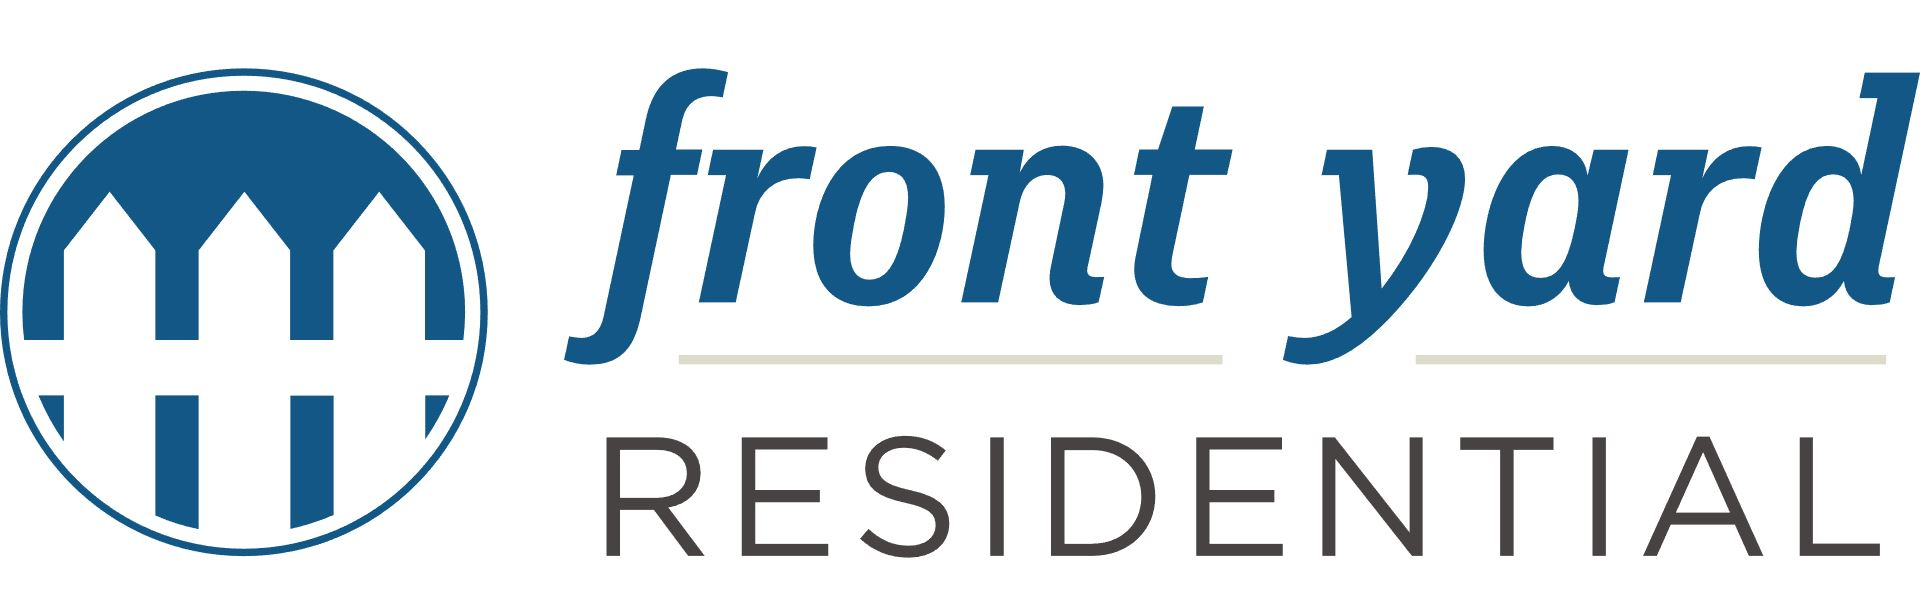 Front Yard Residential Company Logo